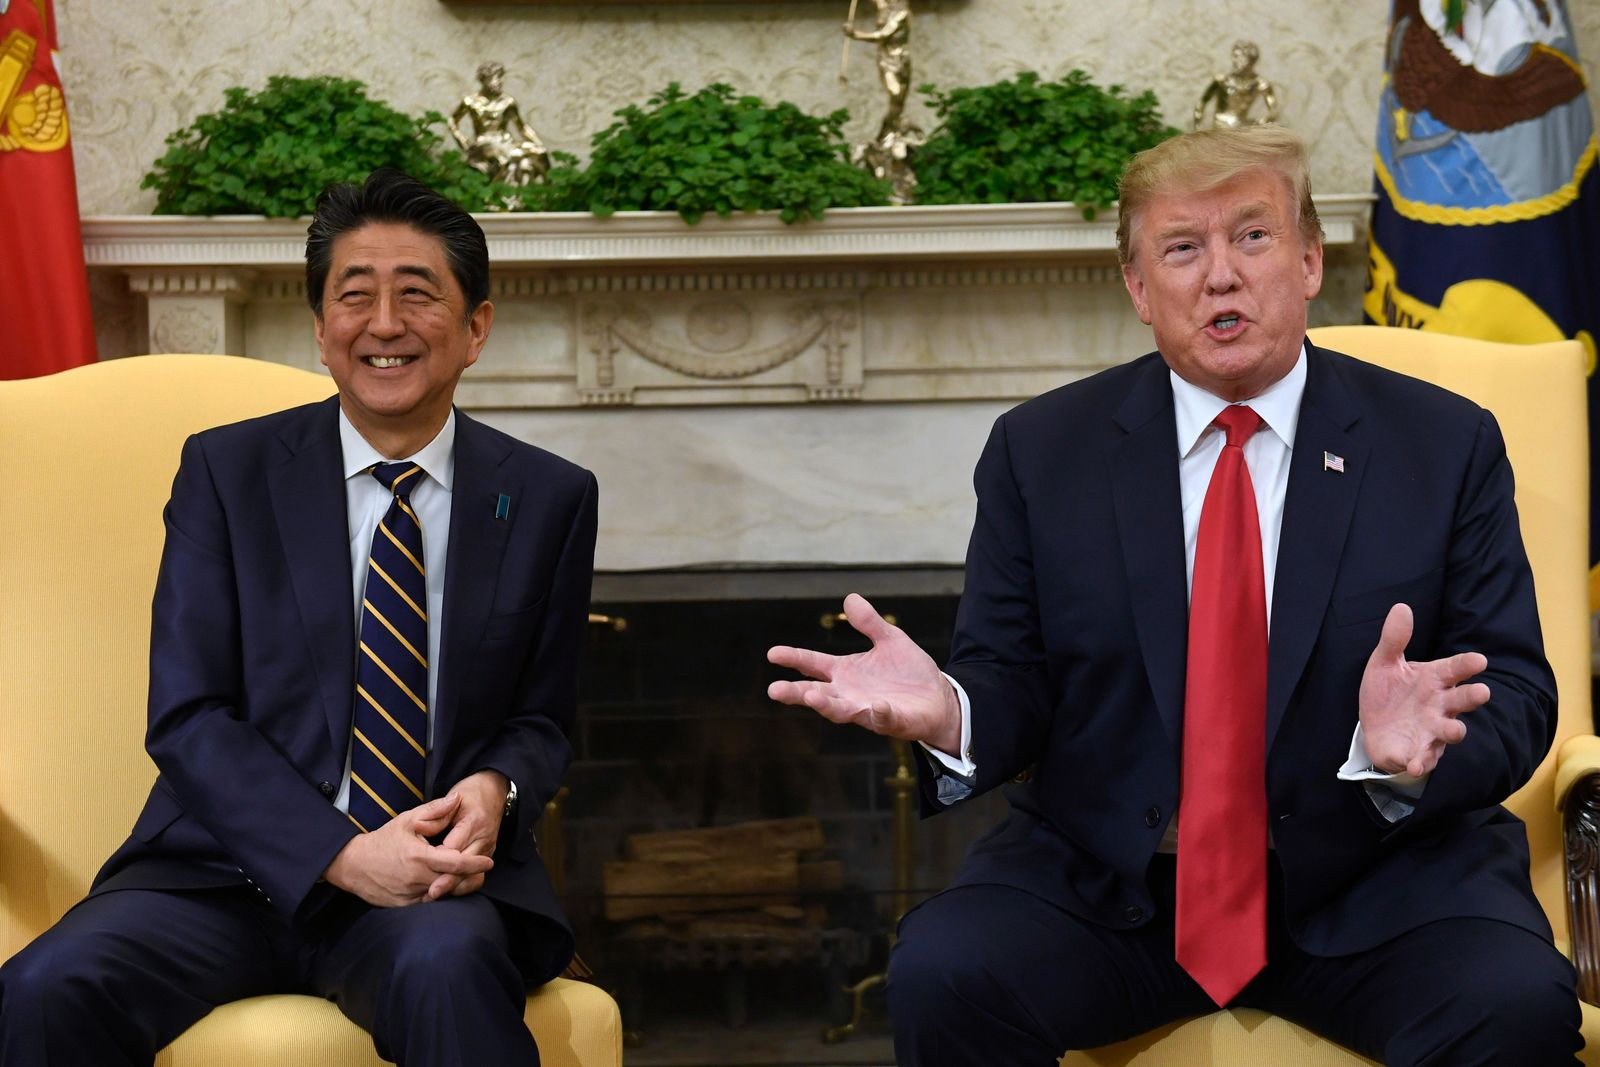 FILE - In this April 26, 2019, file photo, U.S. President Donald Trump, right, speaks while meeting with Japanese Prime Minister Shinzo Abe, left, in the Oval Office of the White House in Washington.{ } (AP Photo/Susan Walsh, File)